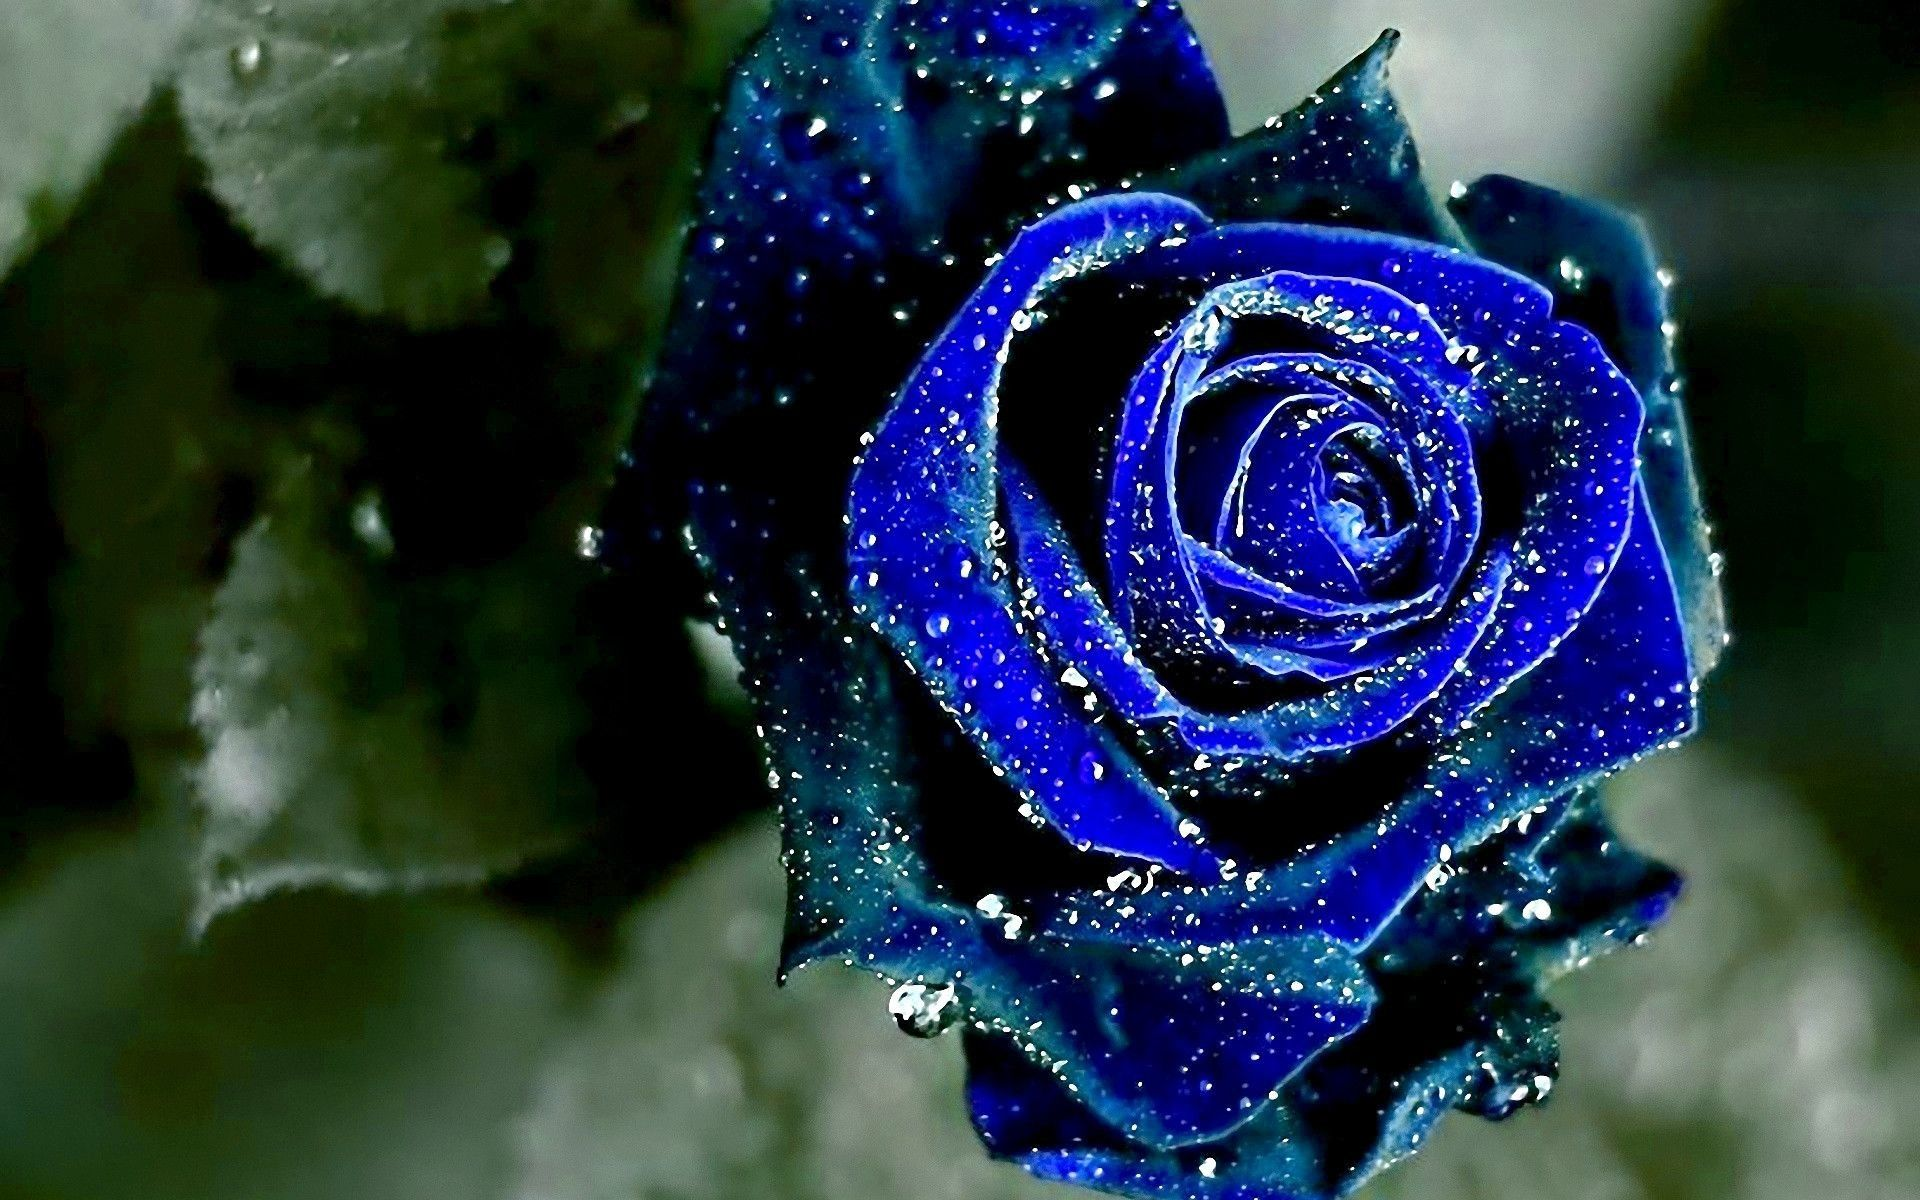 blue cosmic rose цфддзфзук